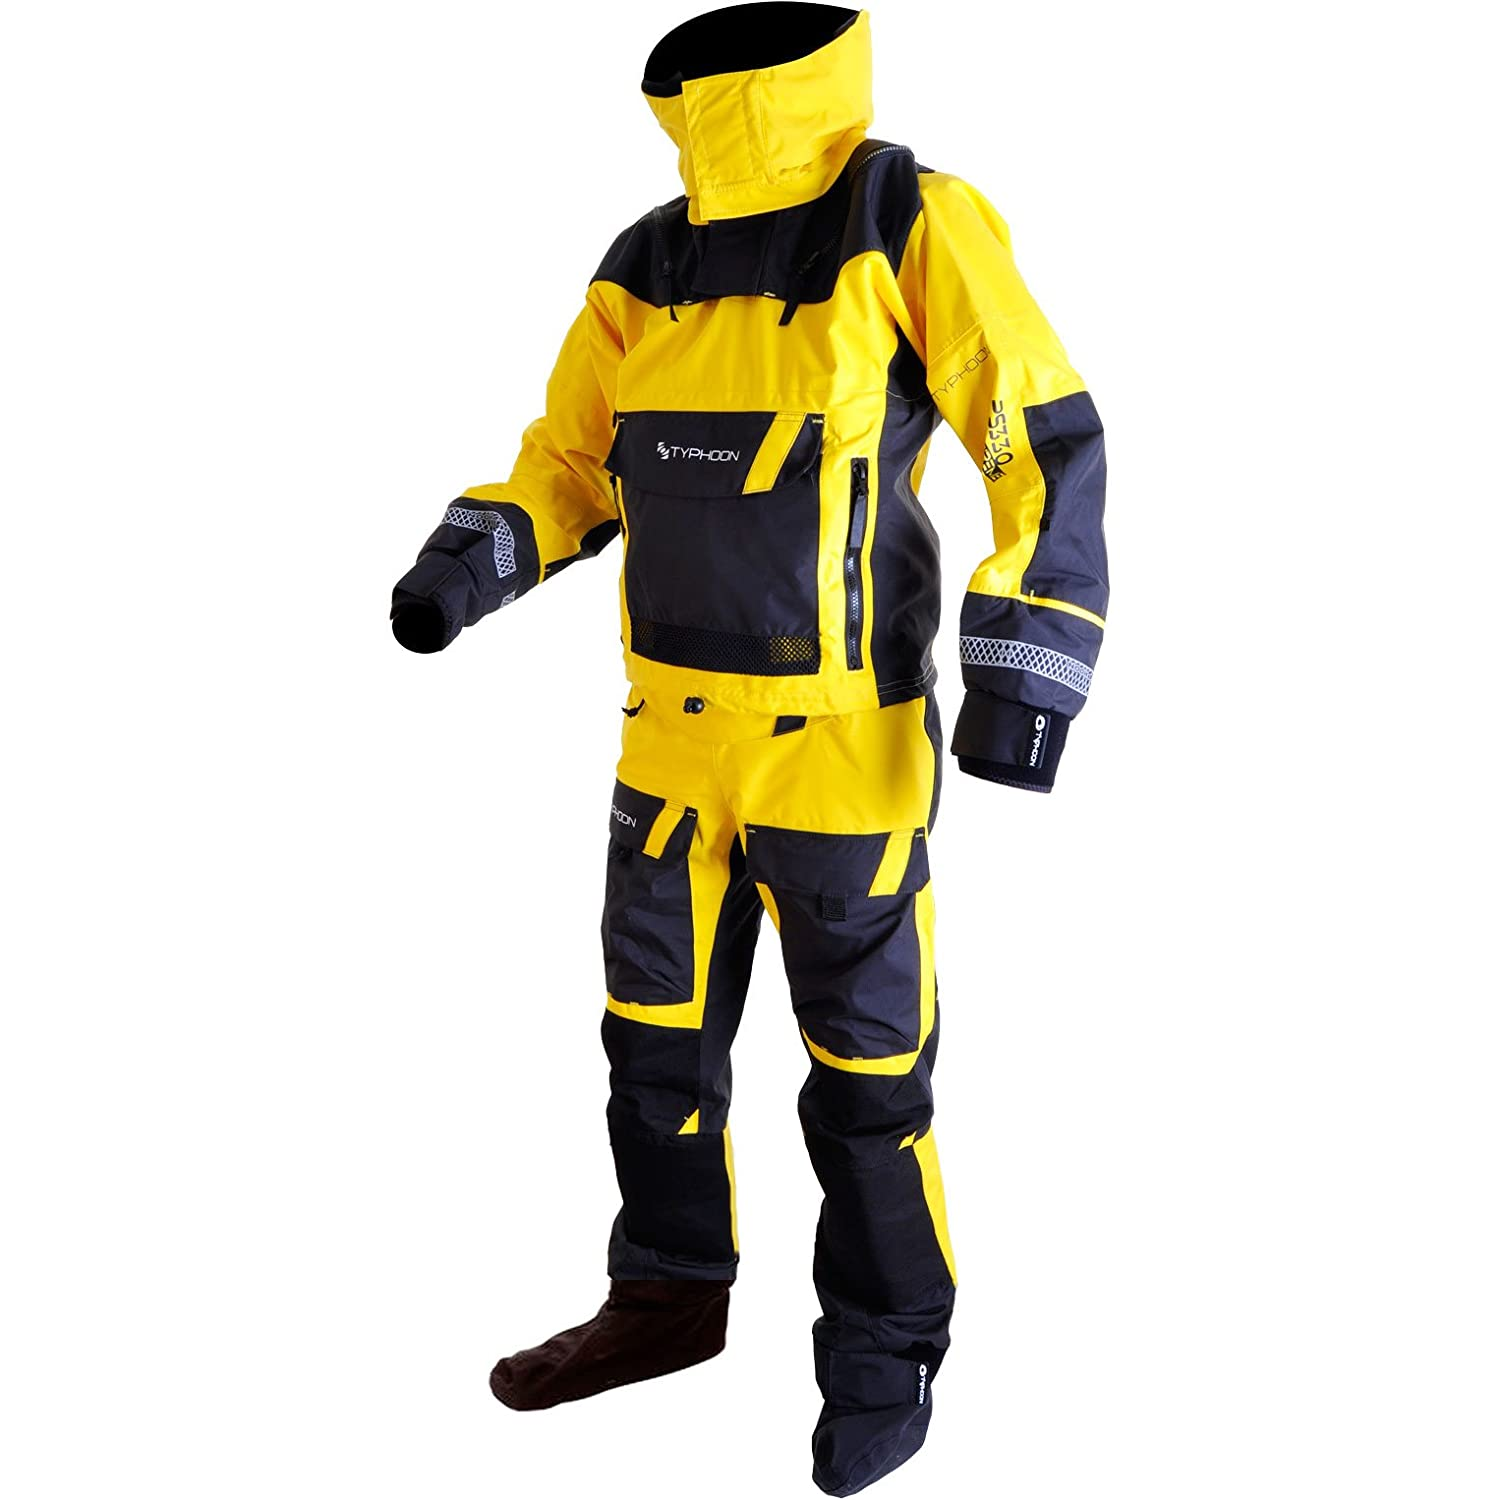 Amazon.com : Typhoon PS330 Xtreme Drysuit Limited Edition ...